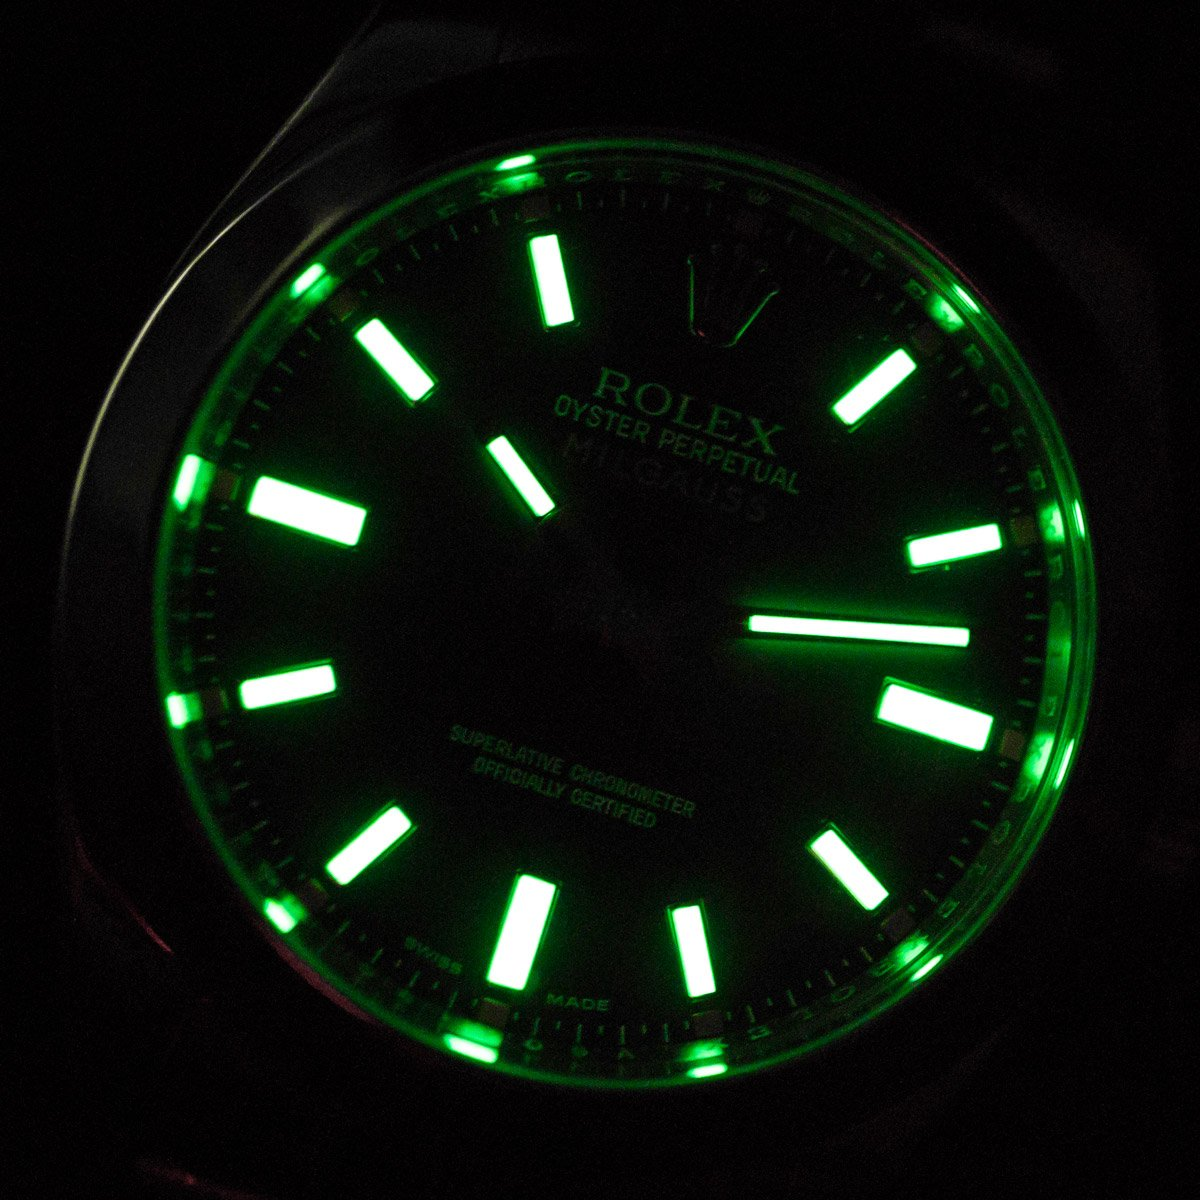 Chromalight vs Superluminova